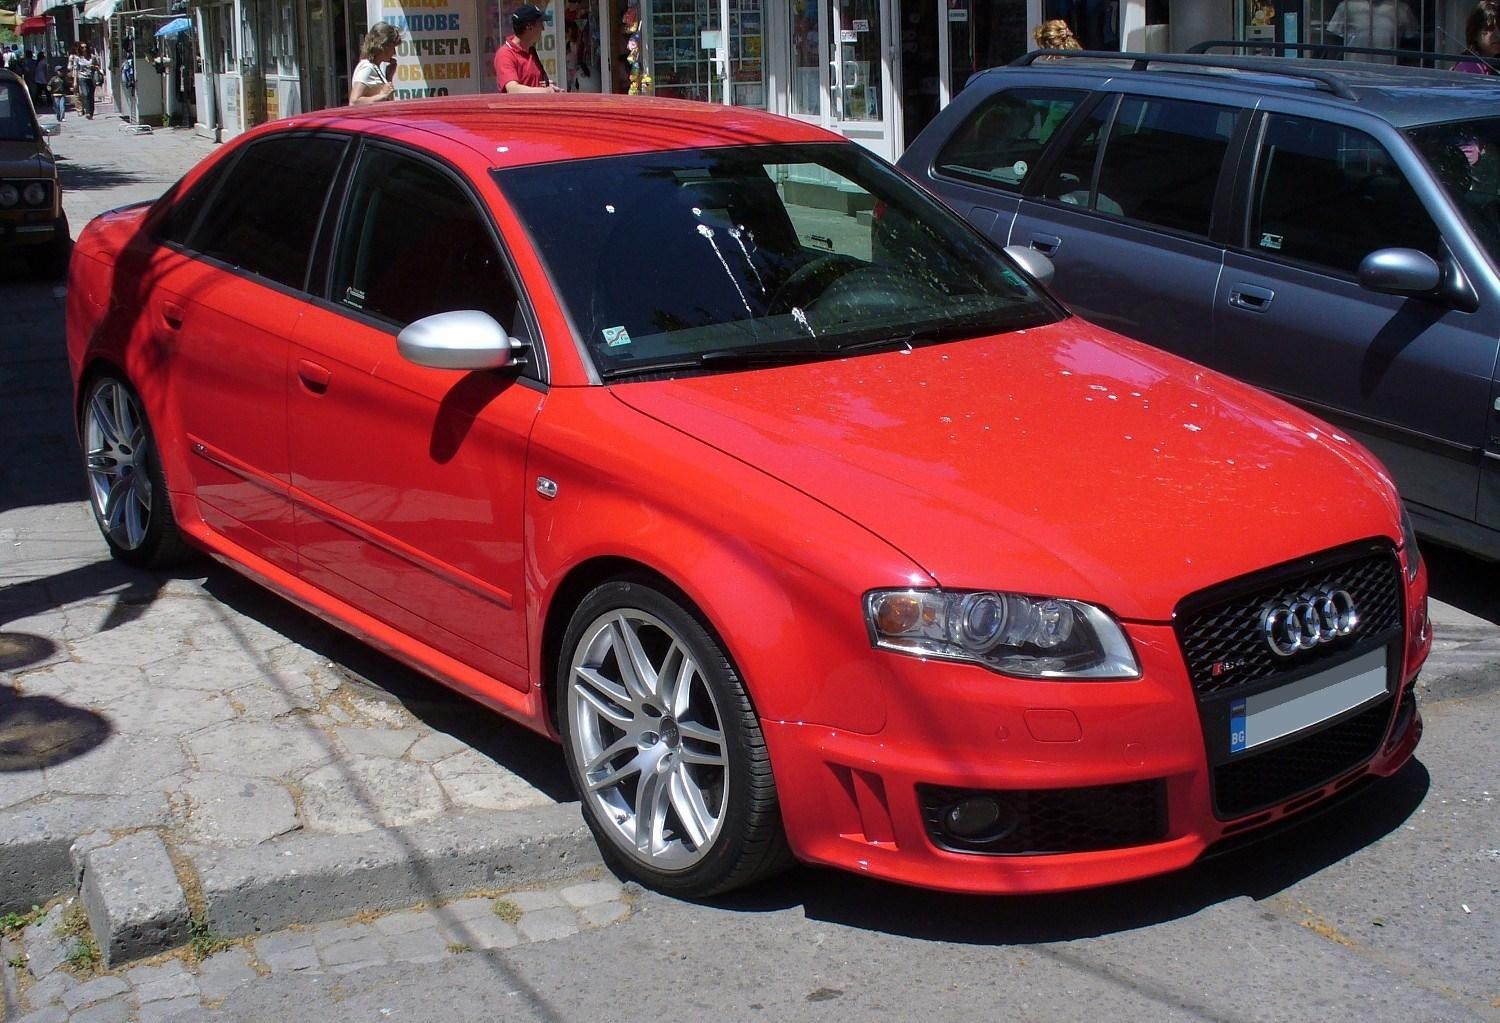 AUDI RS4 Wallpapers in High DEF For Desktop, Laptop, Tablet & Mobile 1